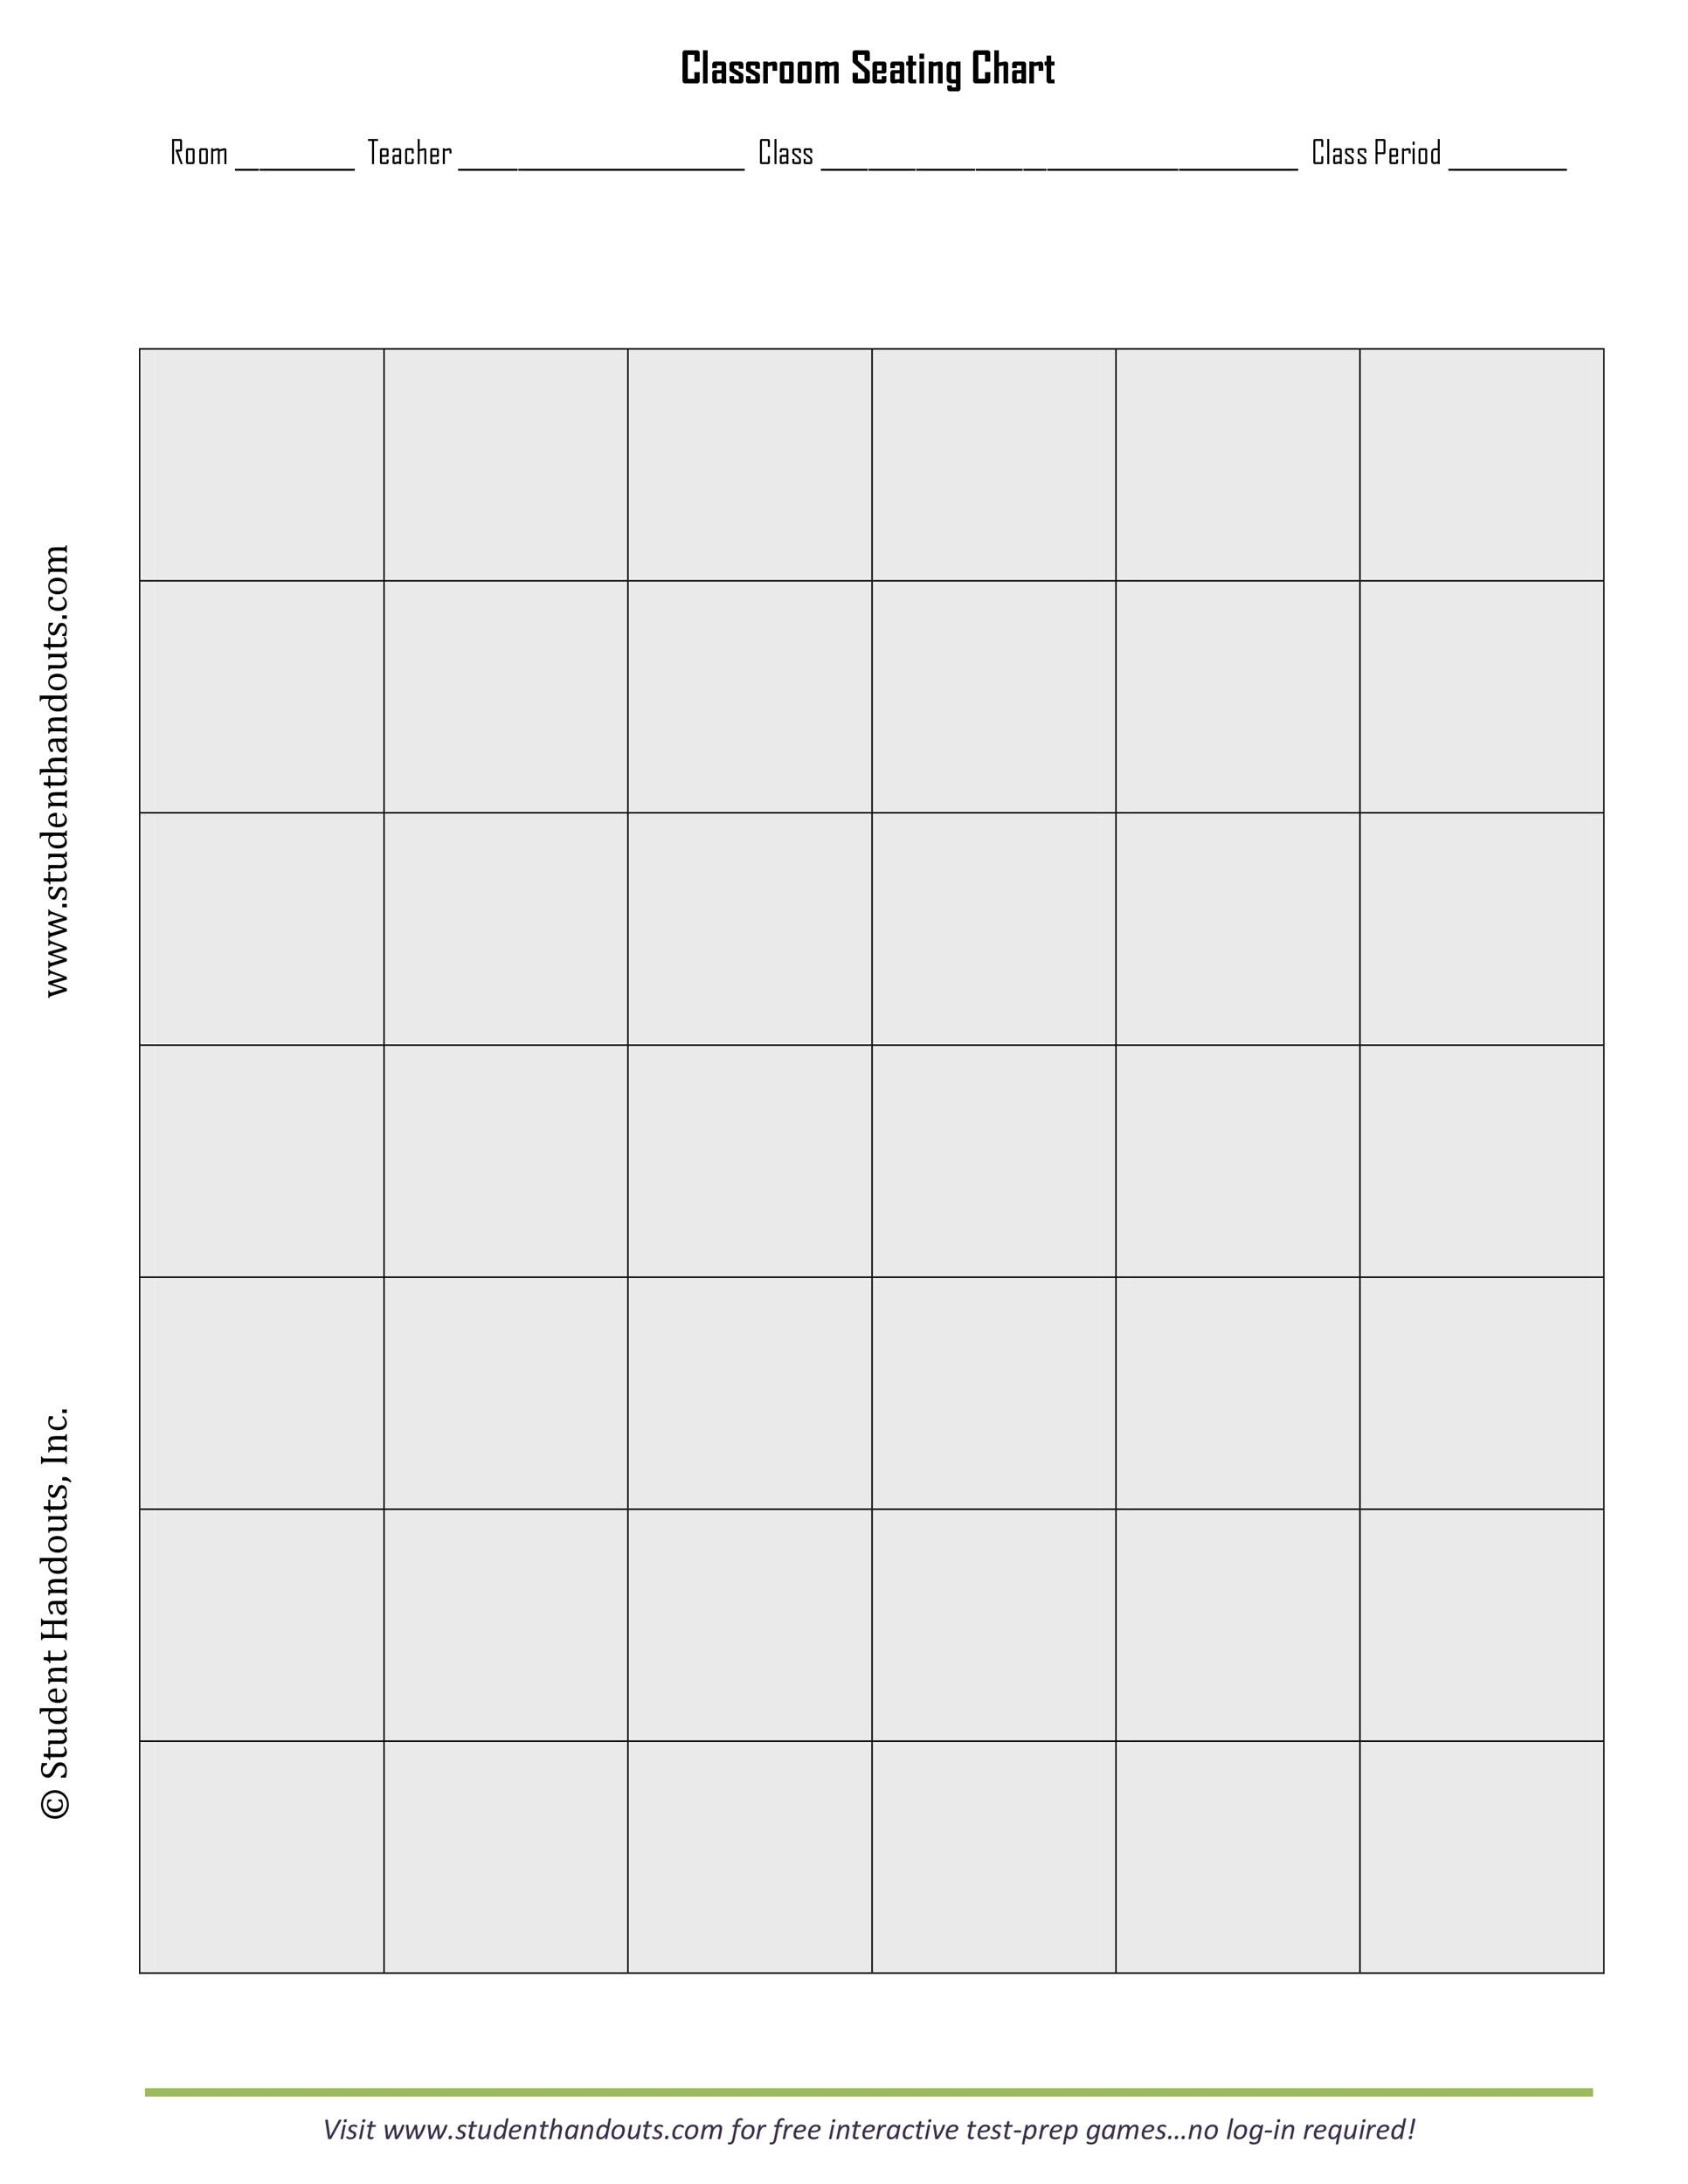 Free seating chart template 04